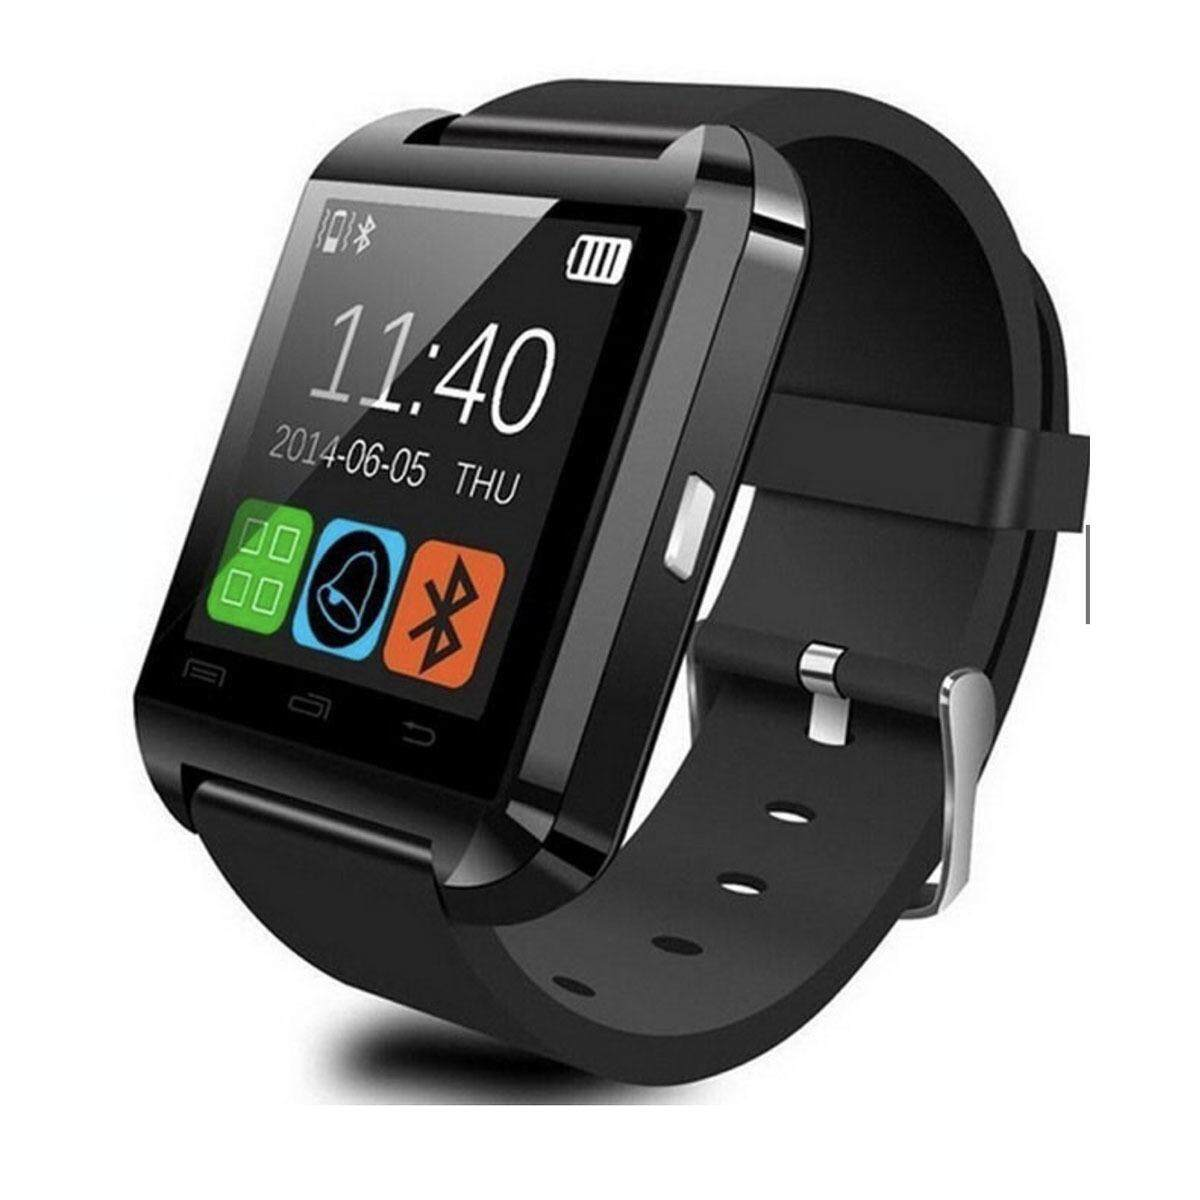 TEKKASHOP XMAS GIFT U8 Classy Smart Watch Touch Screen Bluetooth Connect Android iOS Phone, Black